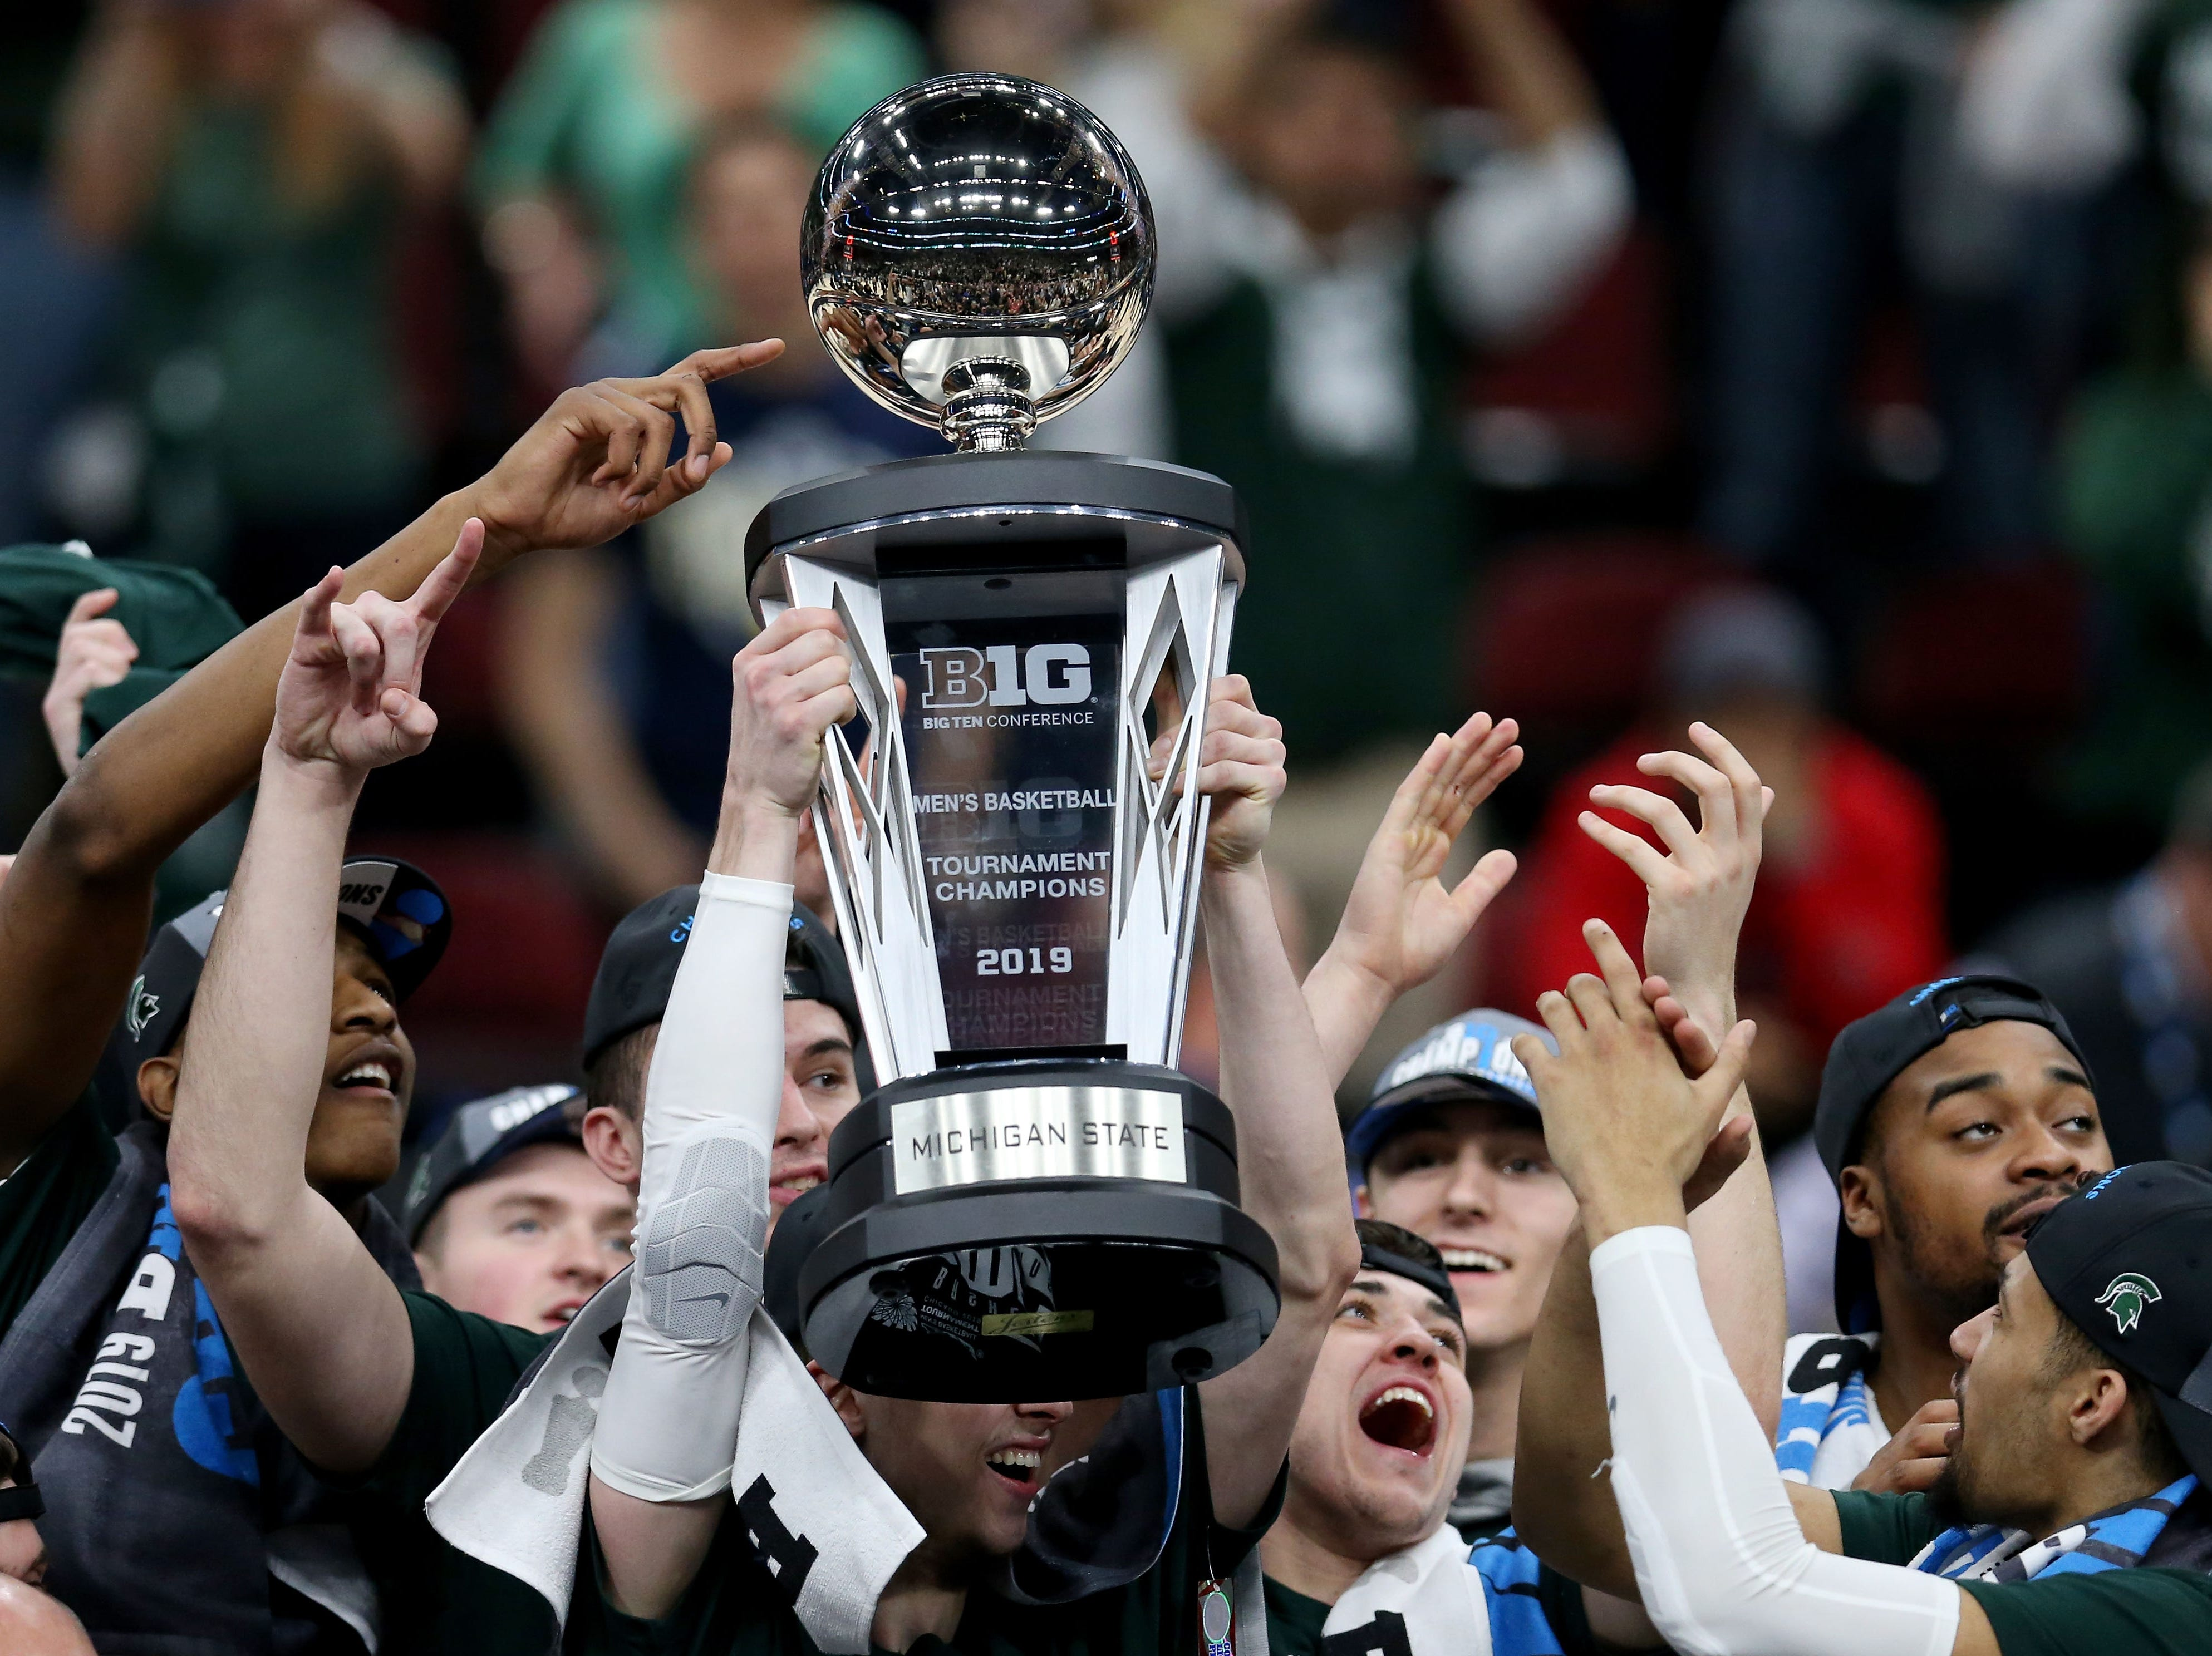 CHICAGO, ILLINOIS - MARCH 17:  The Michigan State Spartans celebrate after beating the Michigan Wolverines 65-60 in the championship game of the Big Ten Basketball Tournament at the United Center on March 17, 2019 in Chicago, Illinois. (Photo by Dylan Buell/Getty Images)